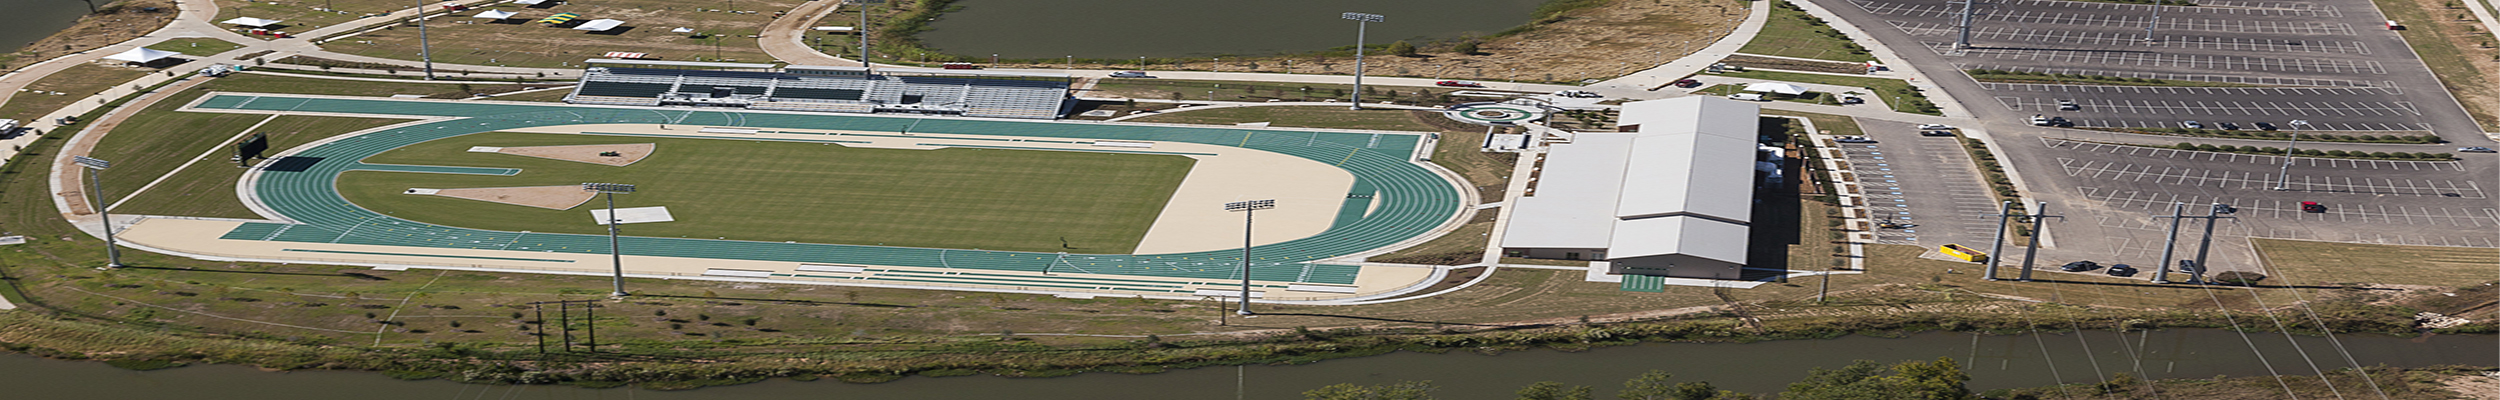 Baylor University Clyde Hart Track & Field Stadium